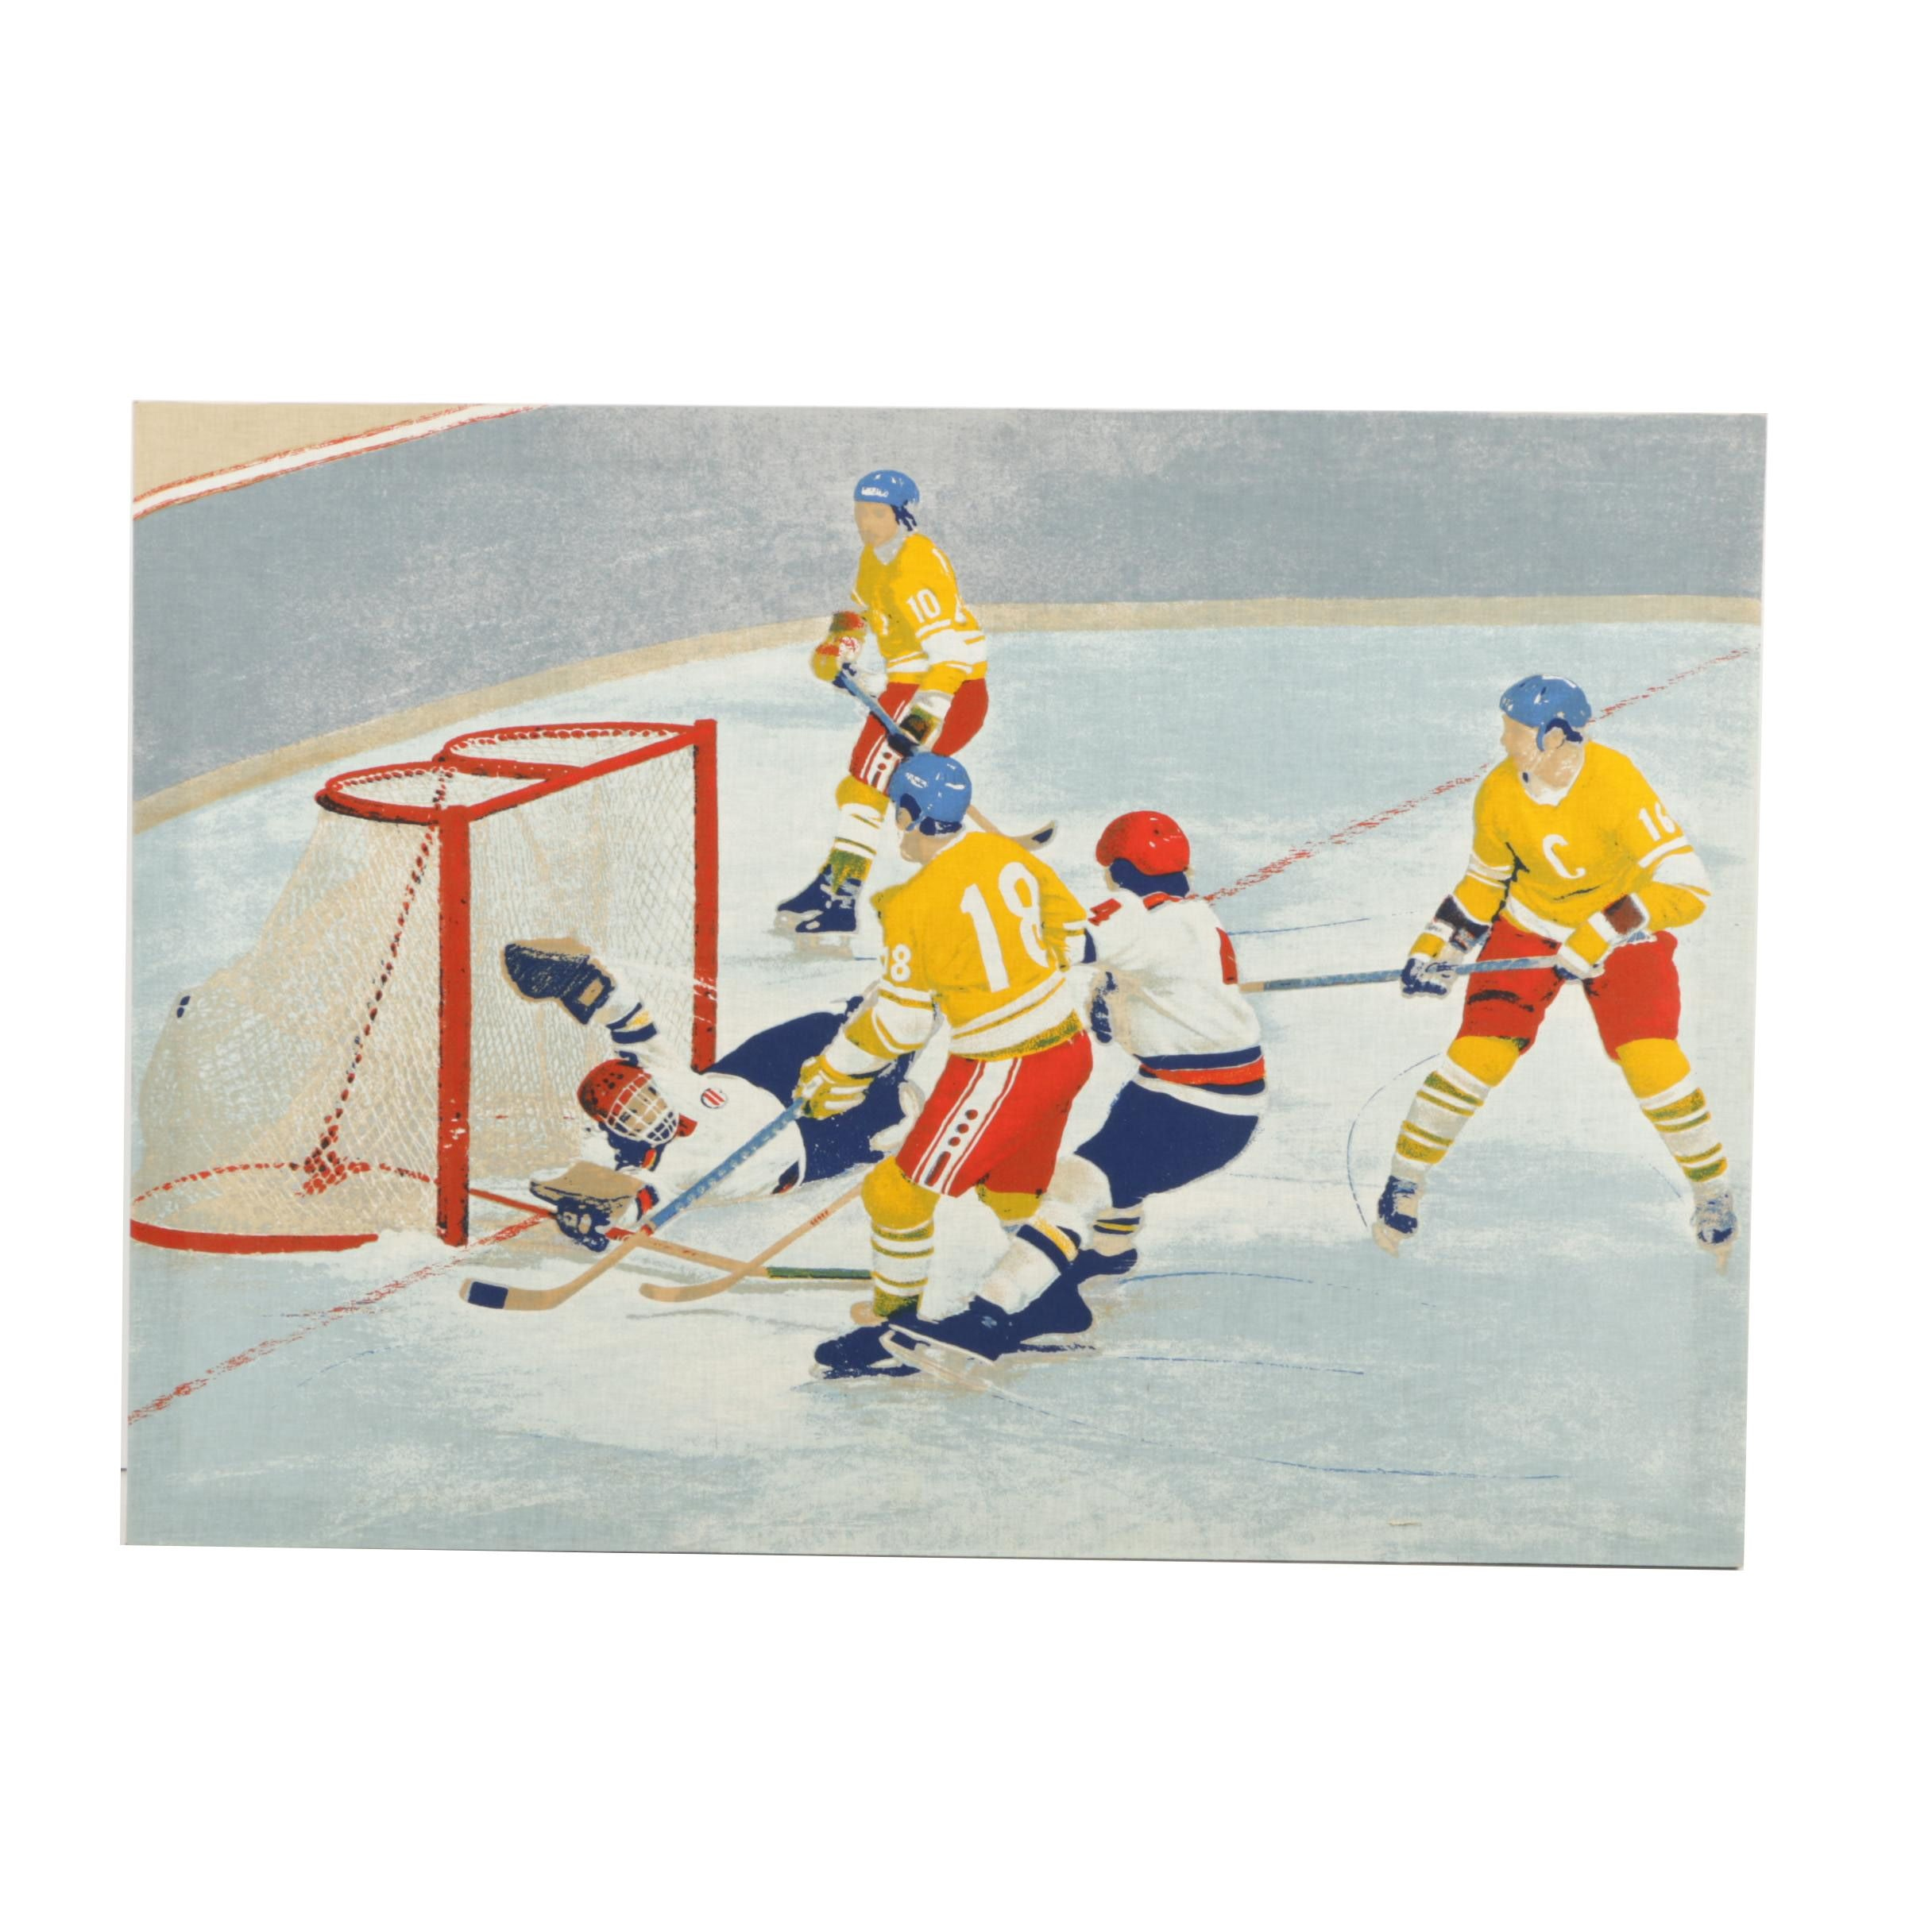 Digital Print on Fabric After Original Painting of Hockey Players